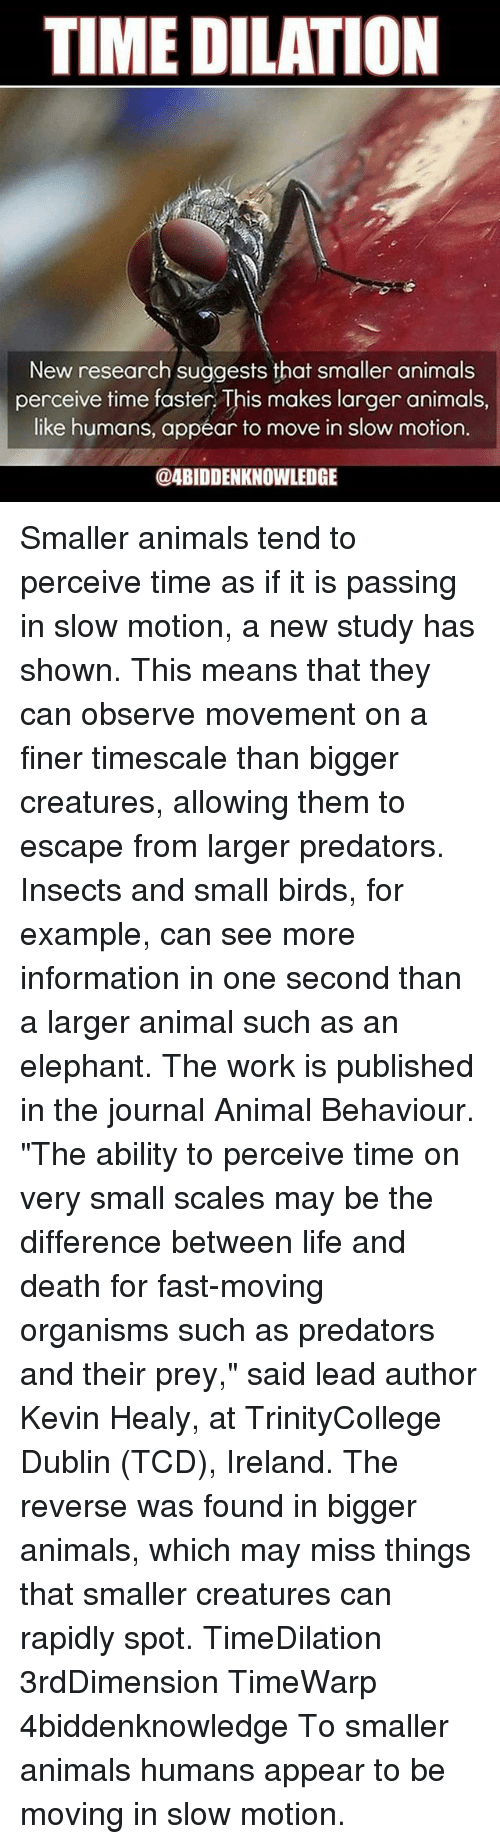 "Animals, Life, and Memes: TIME DILATION  New research suggests that smaller animals  perceive time faster. This makes larger animals,  like humans, appear to move in slow motion.  ODABIDDENKNOWLEDGE Smaller animals tend to perceive time as if it is passing in slow motion, a new study has shown. This means that they can observe movement on a finer timescale than bigger creatures, allowing them to escape from larger predators. Insects and small birds, for example, can see more information in one second than a larger animal such as an elephant. The work is published in the journal Animal Behaviour. ""The ability to perceive time on very small scales may be the difference between life and death for fast-moving organisms such as predators and their prey,"" said lead author Kevin Healy, at TrinityCollege Dublin (TCD), Ireland. The reverse was found in bigger animals, which may miss things that smaller creatures can rapidly spot. TimeDilation 3rdDimension TimeWarp 4biddenknowledge To smaller animals humans appear to be moving in slow motion."